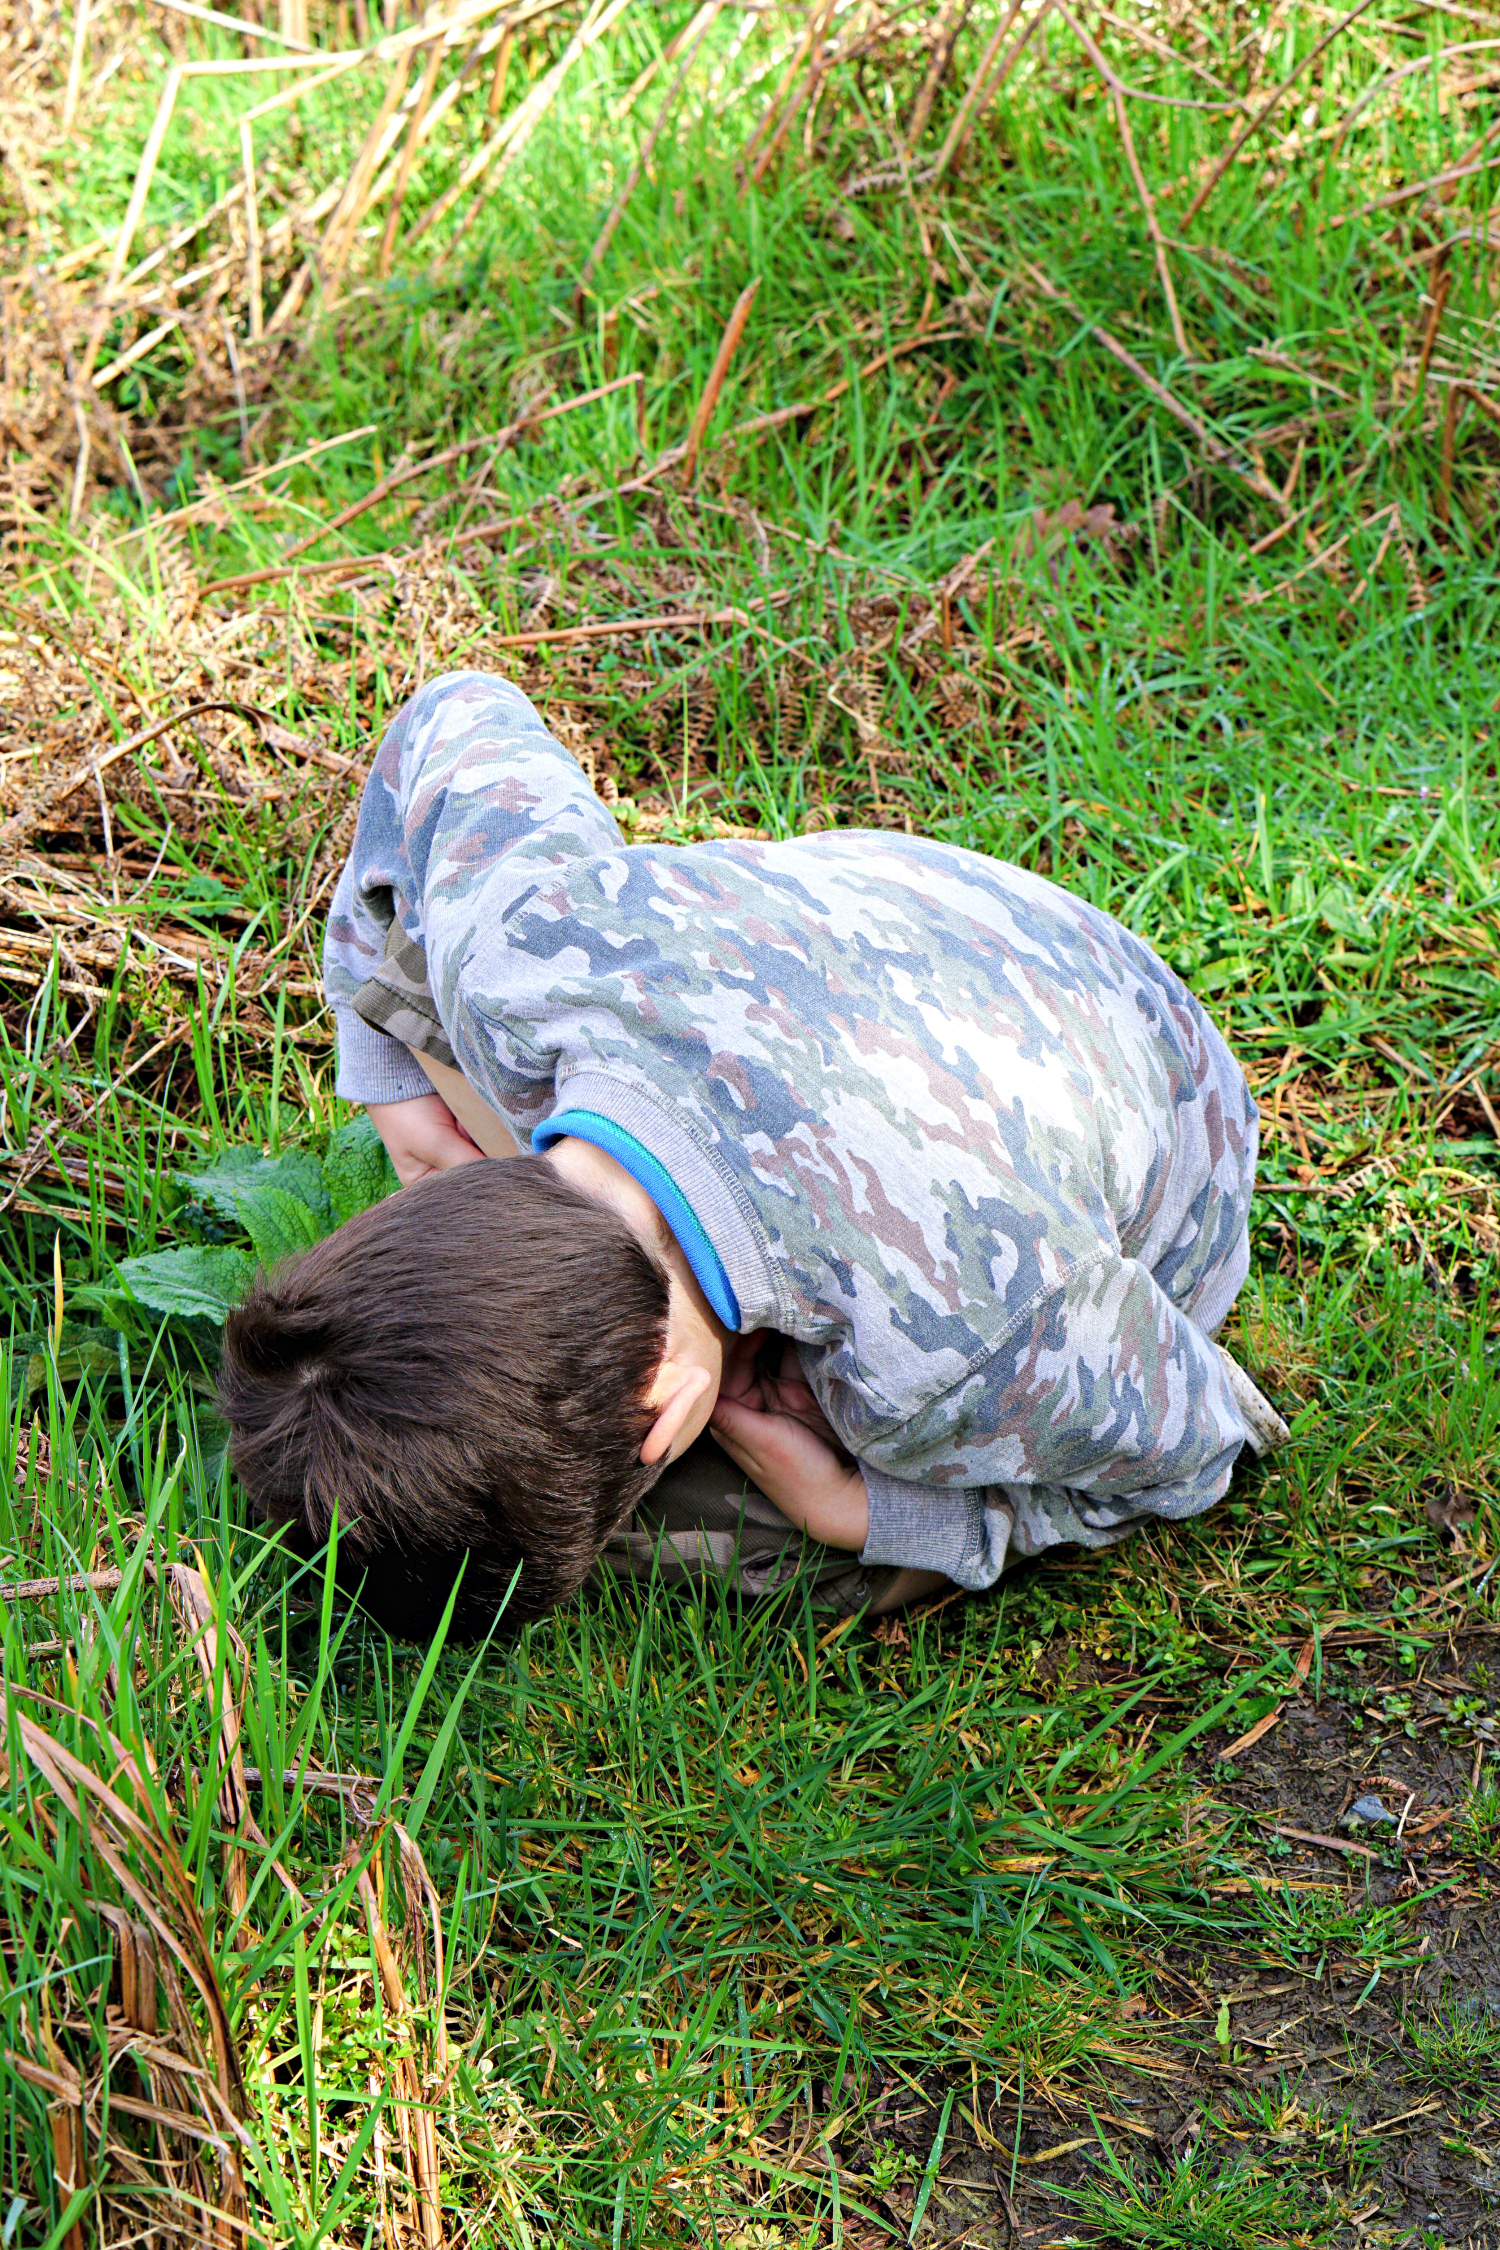 This is a six year old's version of putting their hands over their eyes and thinking you can't see them. He's wearing camouflage so therefore invisible to the naked eye when curled up on the grass.